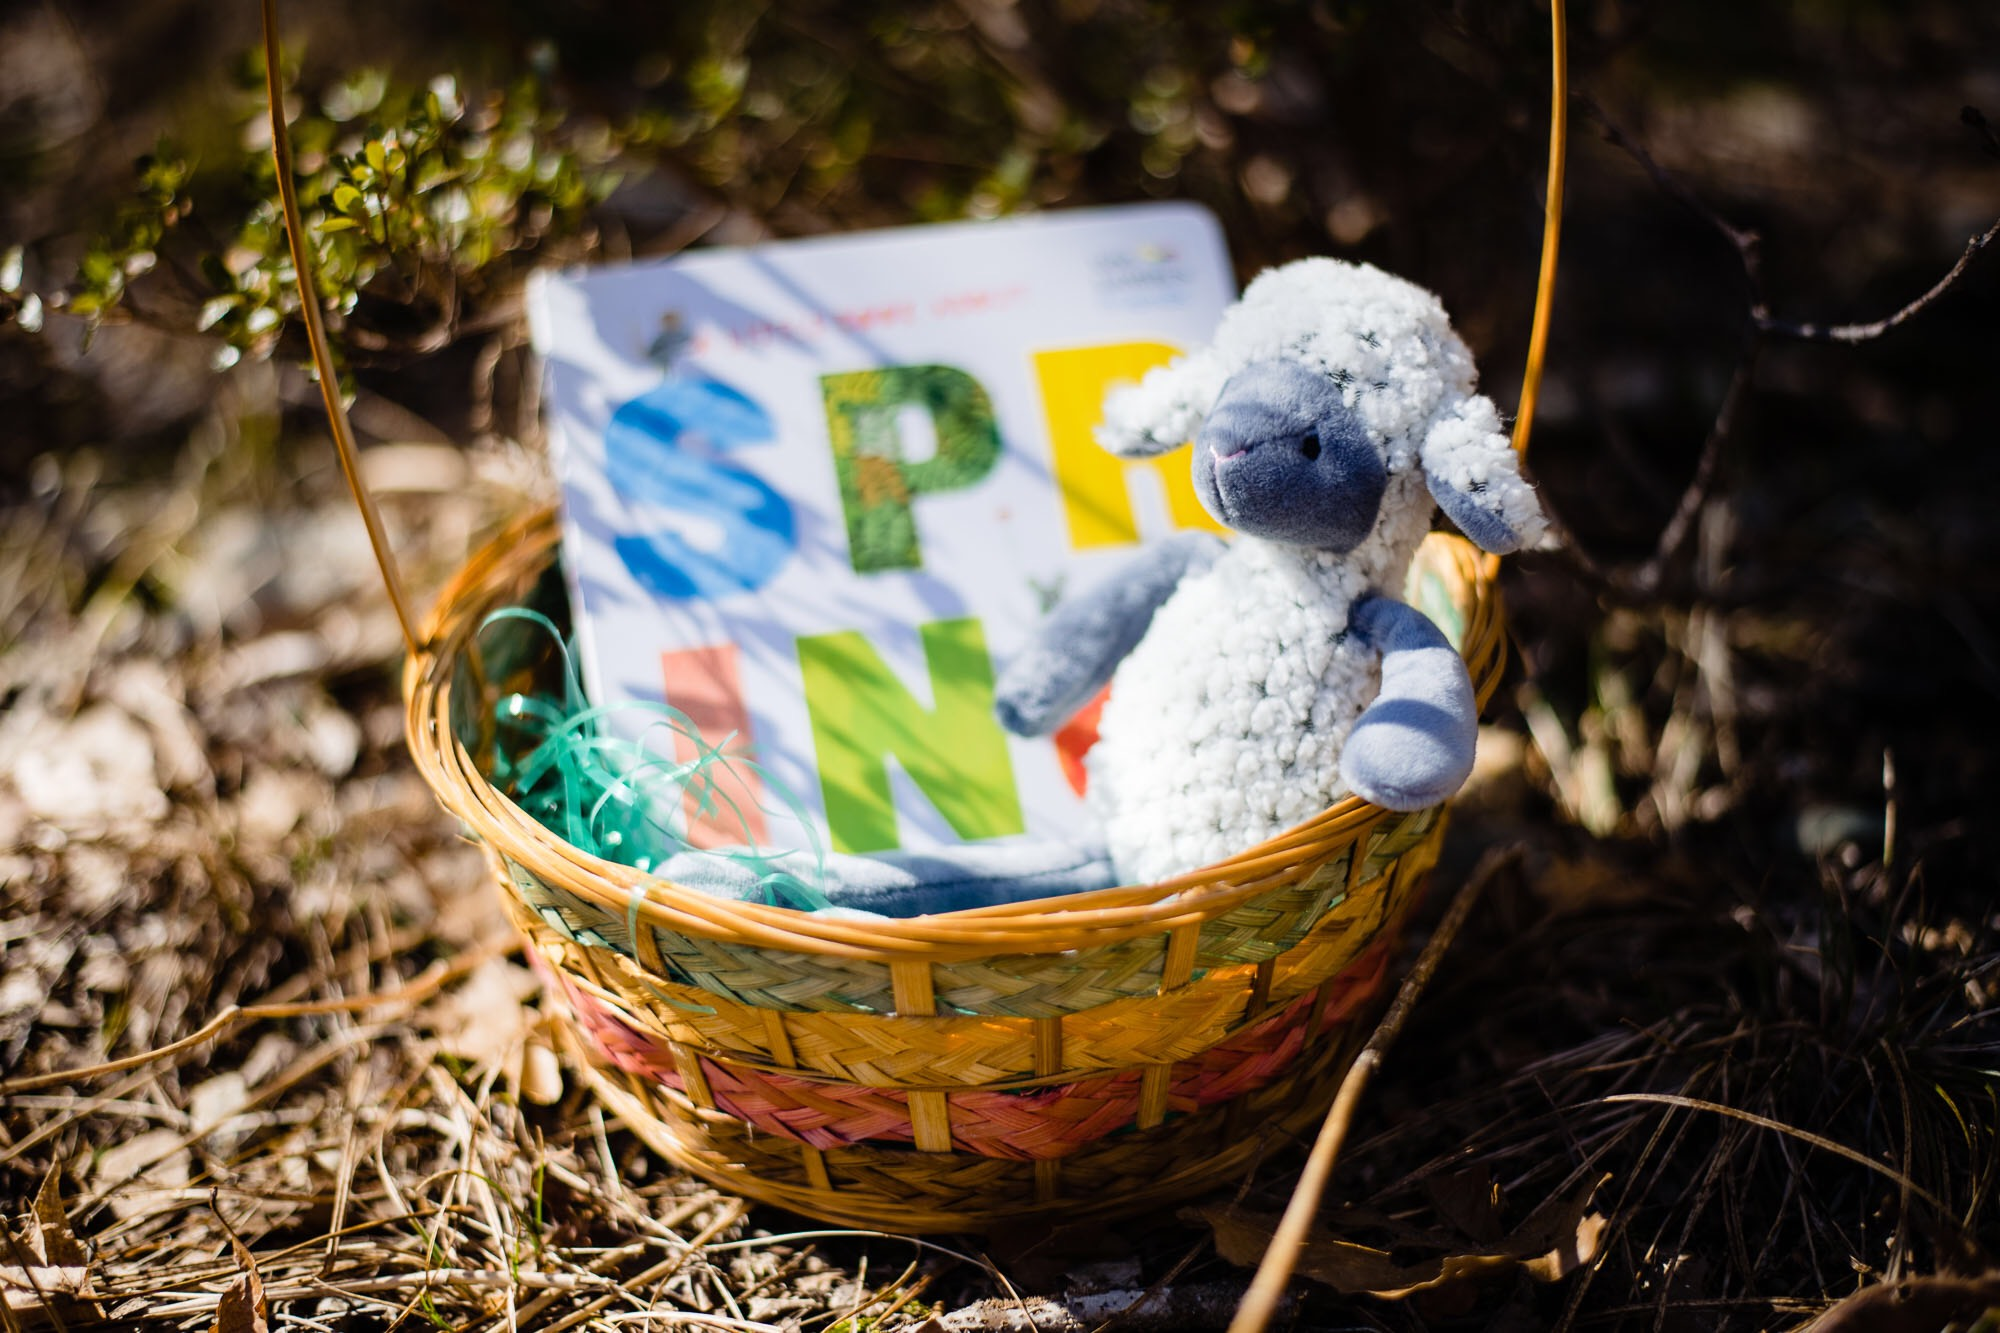 What To Put In Those Easter Baskets: Books and More